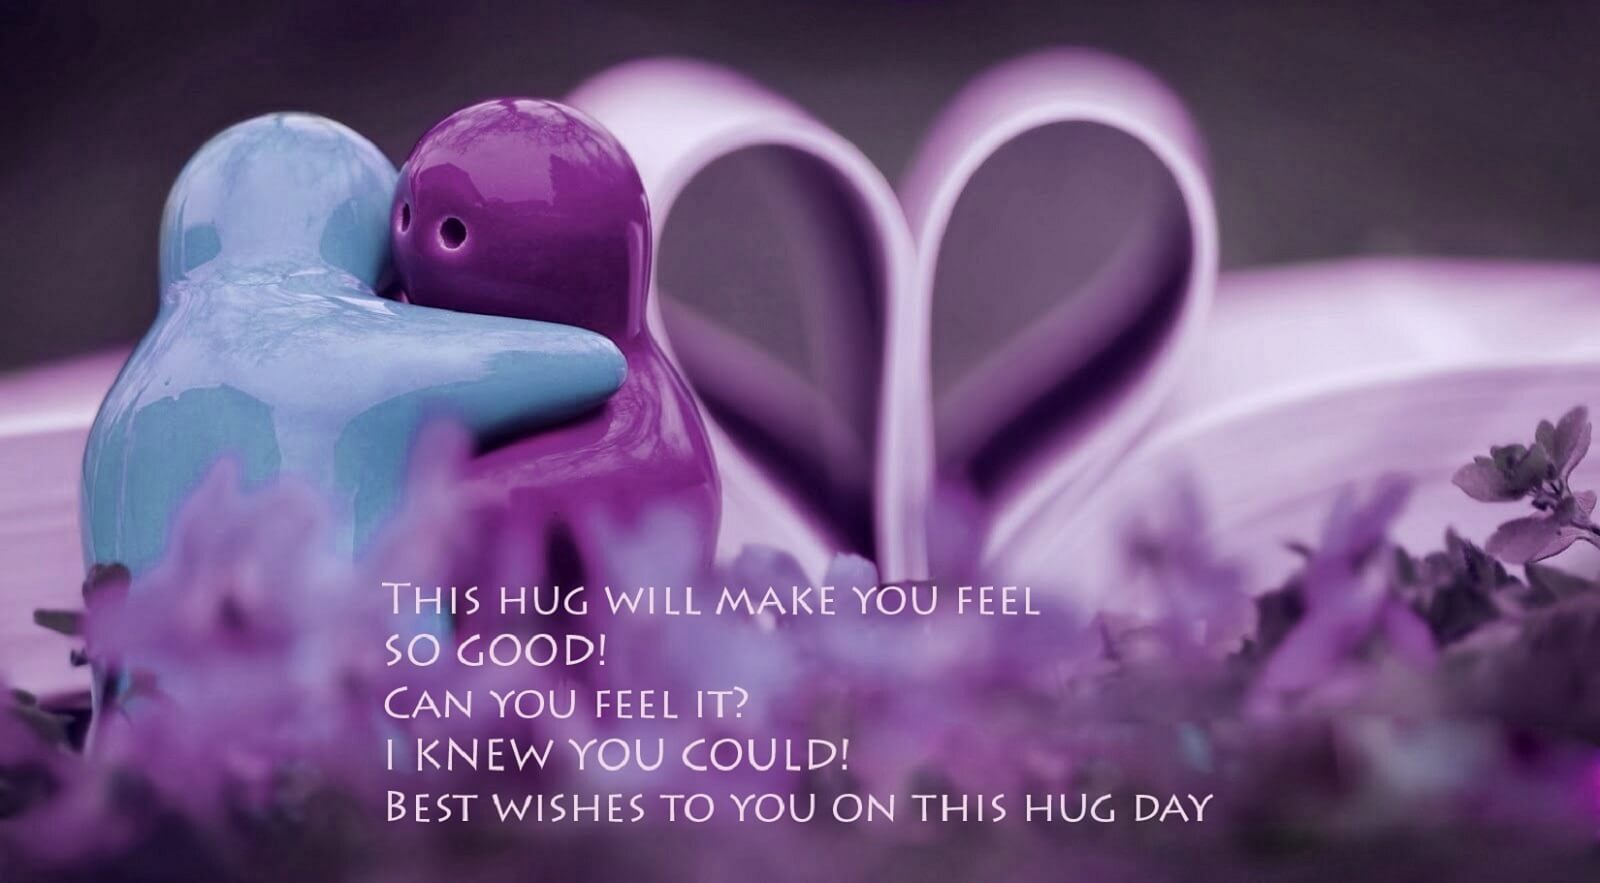 happy hug day make you feel animated quotes graphic hd wallpaper